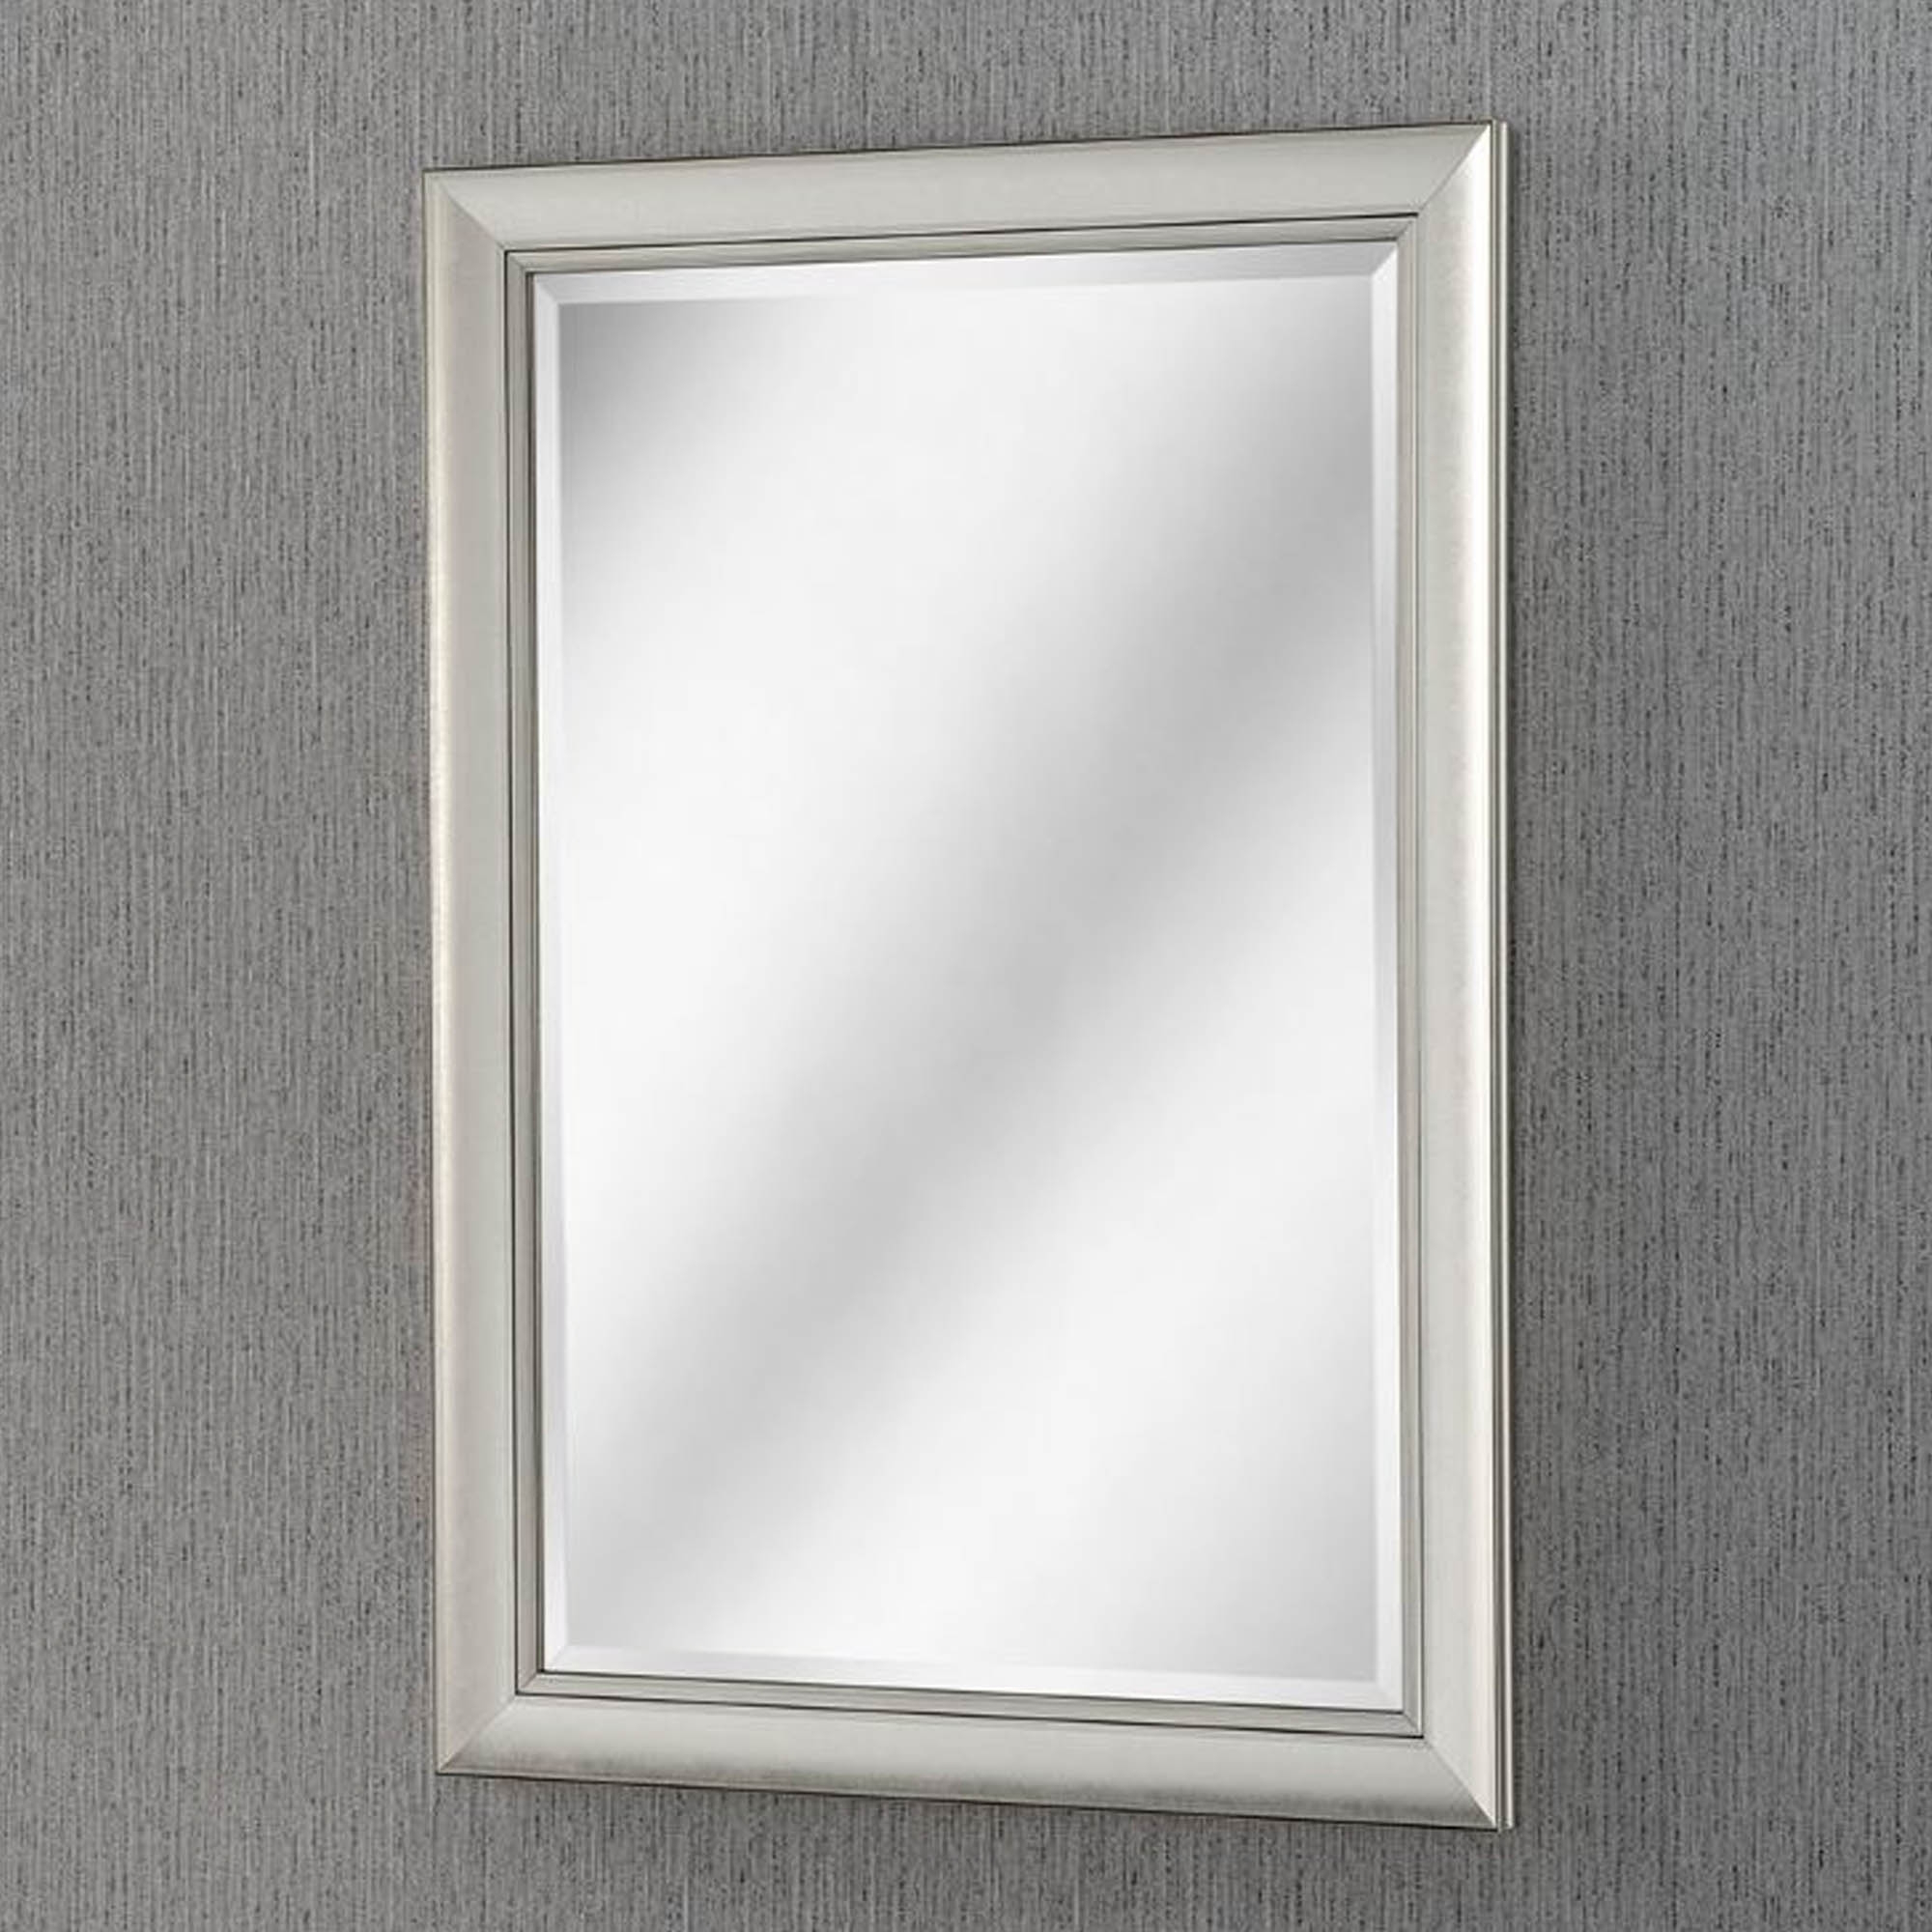 Bevelled Modern Silver Wall Mirror For Fashionable Silver Framed Wall Mirrors (View 3 of 20)